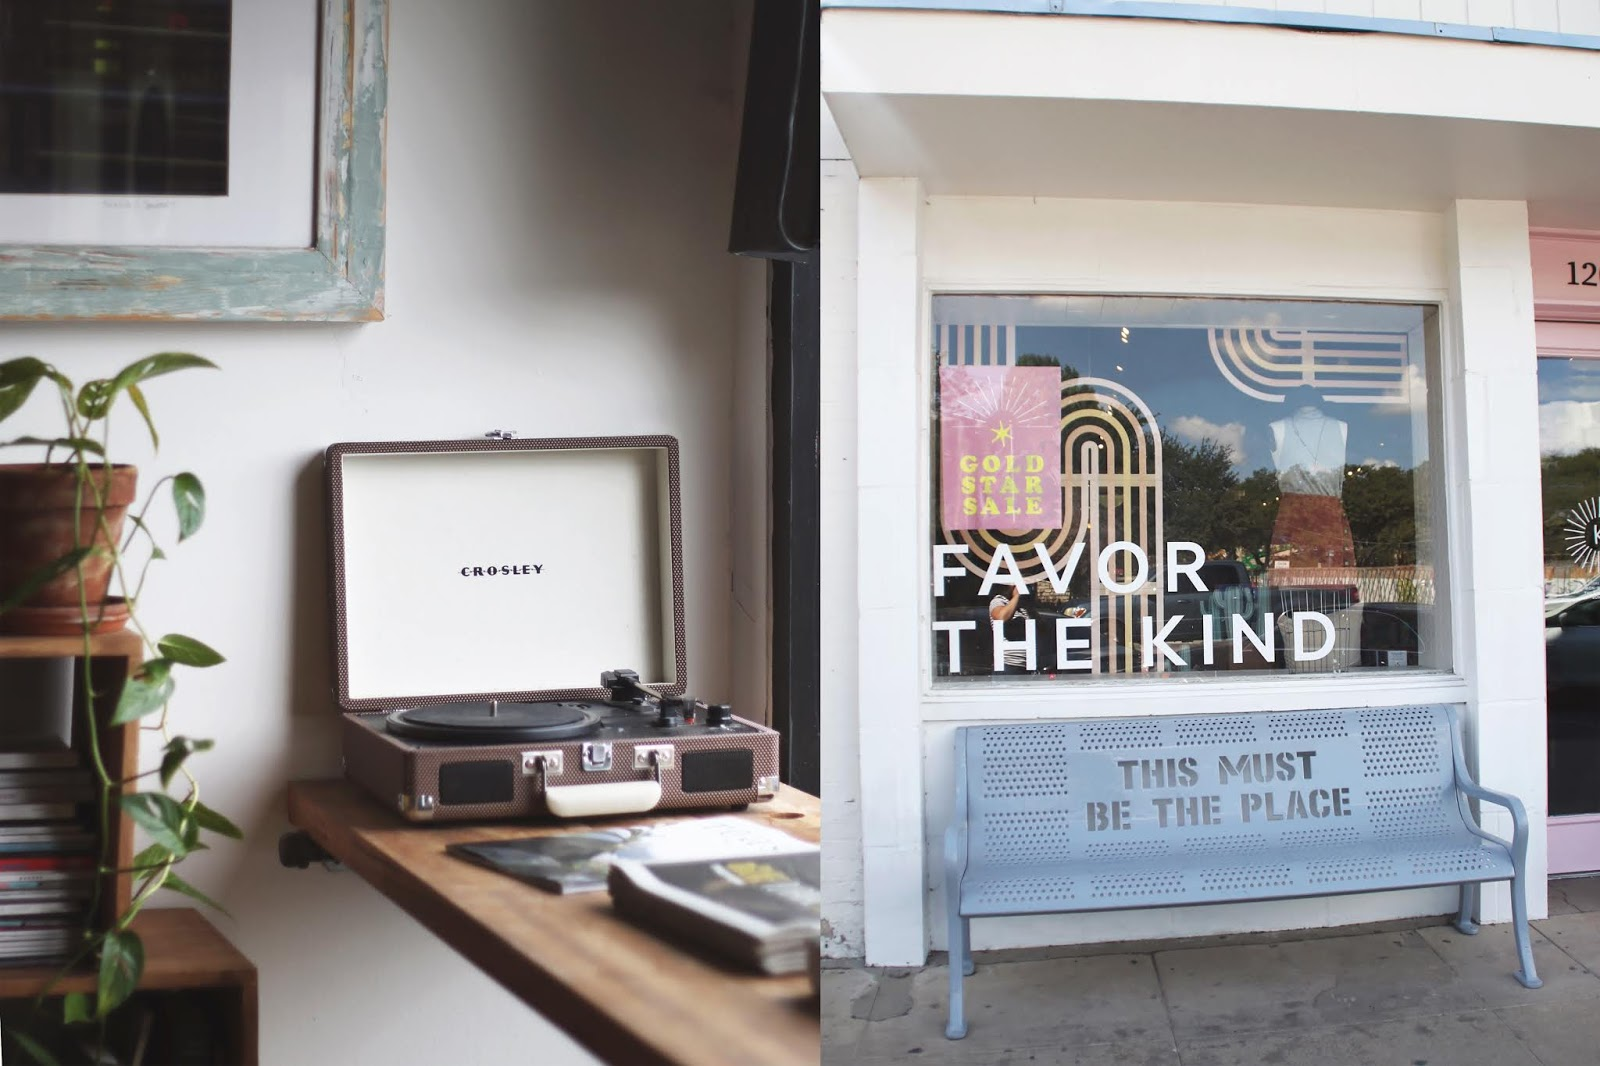 record player, coffee shop record player, favor the kind store, favor the kind storefront, favor the kinds austin texas, south congress austin